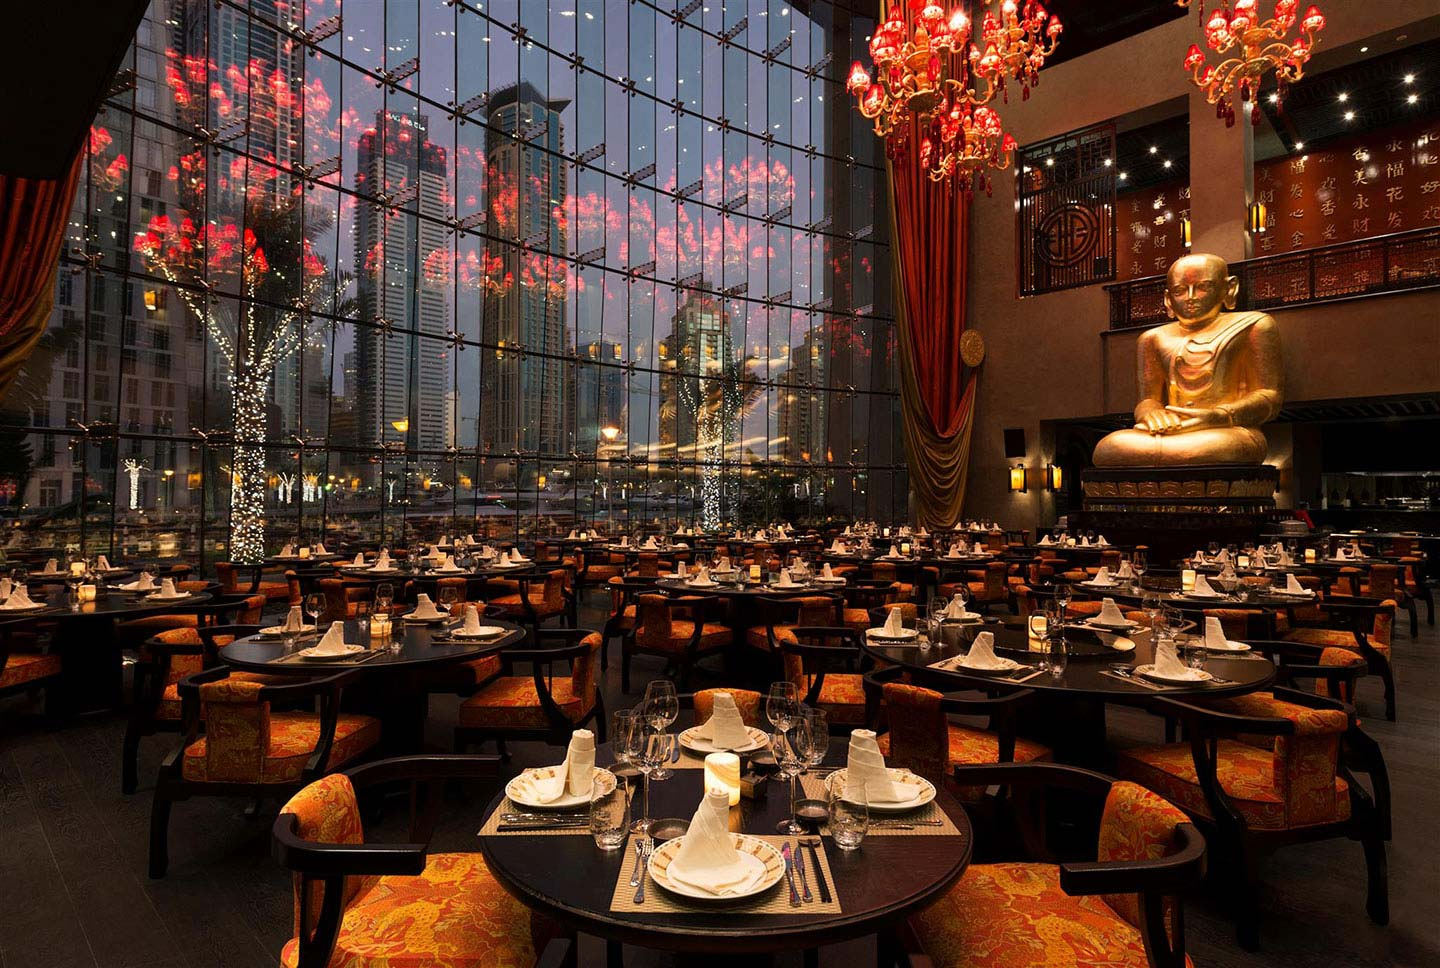 The interior of the Buddha Bar restaurant in Dubai with a tall Buddha sculpture overlooking the dining tables and floor-to-window ceilings overlooking the glamorous Dubai Marina